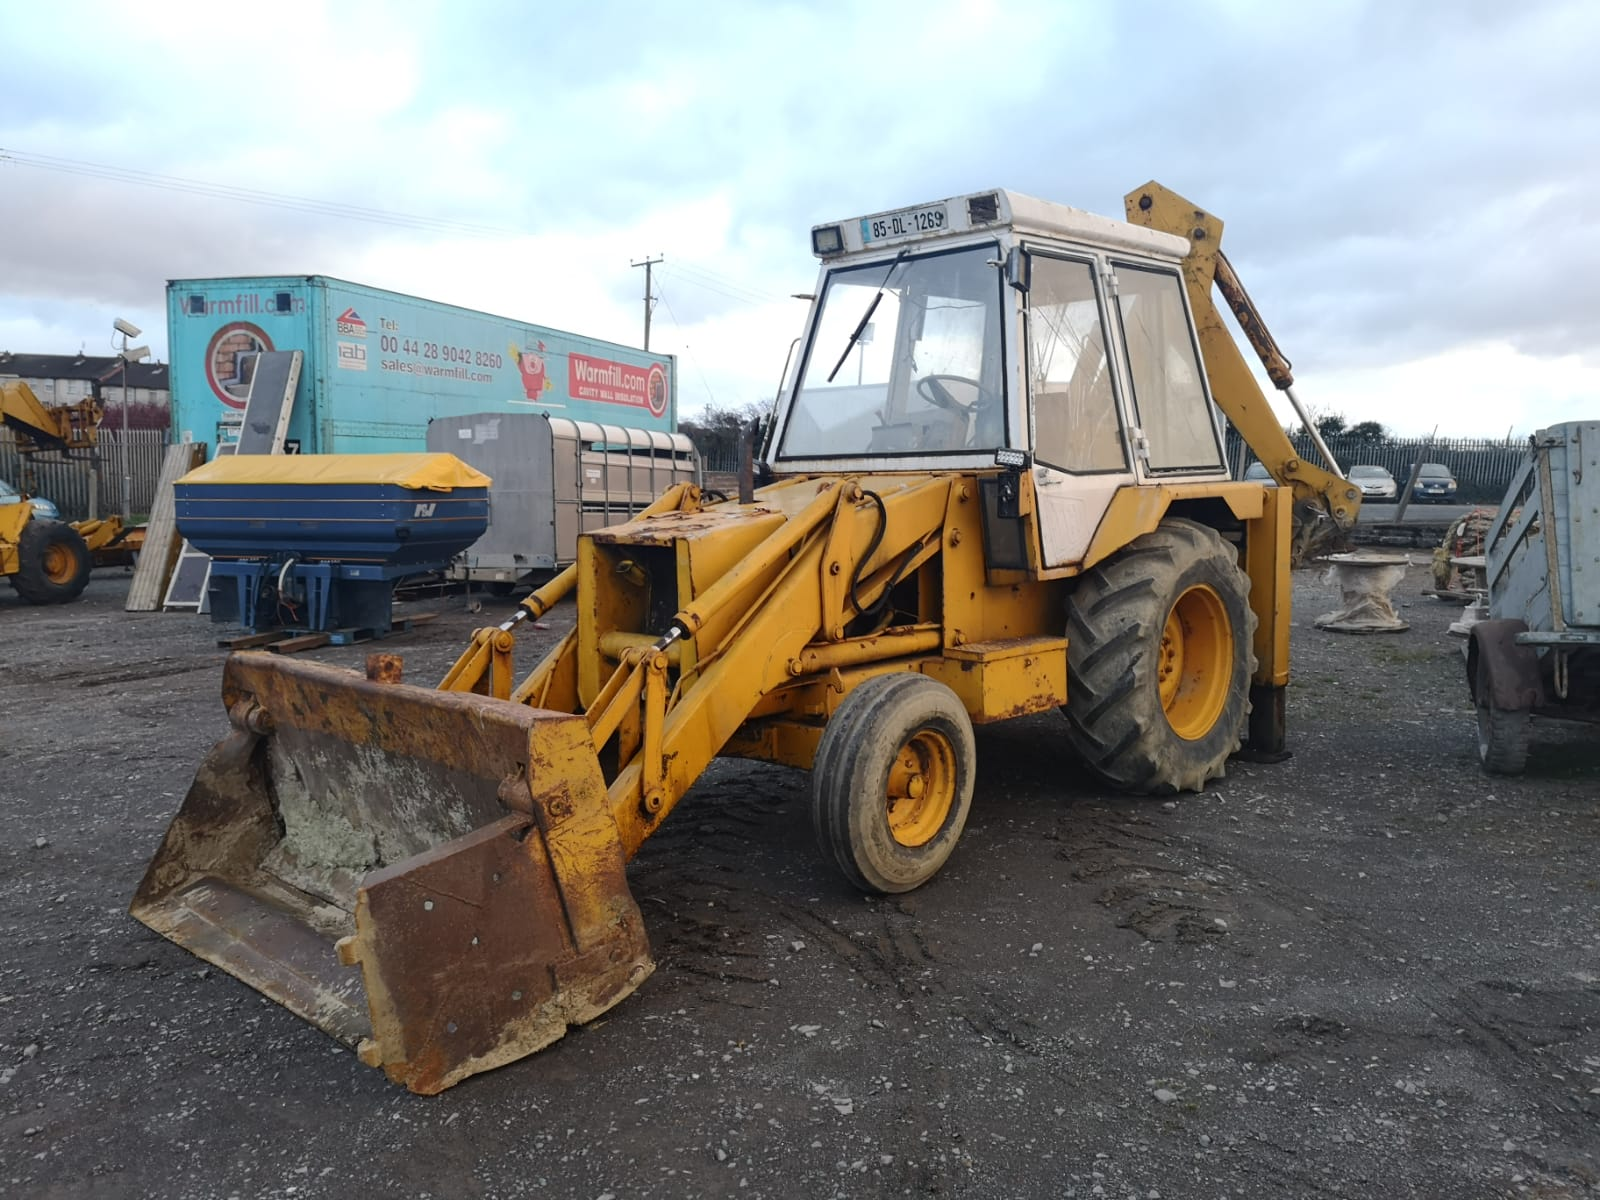 Jcb 3cx Digger White Cab Approx 1985